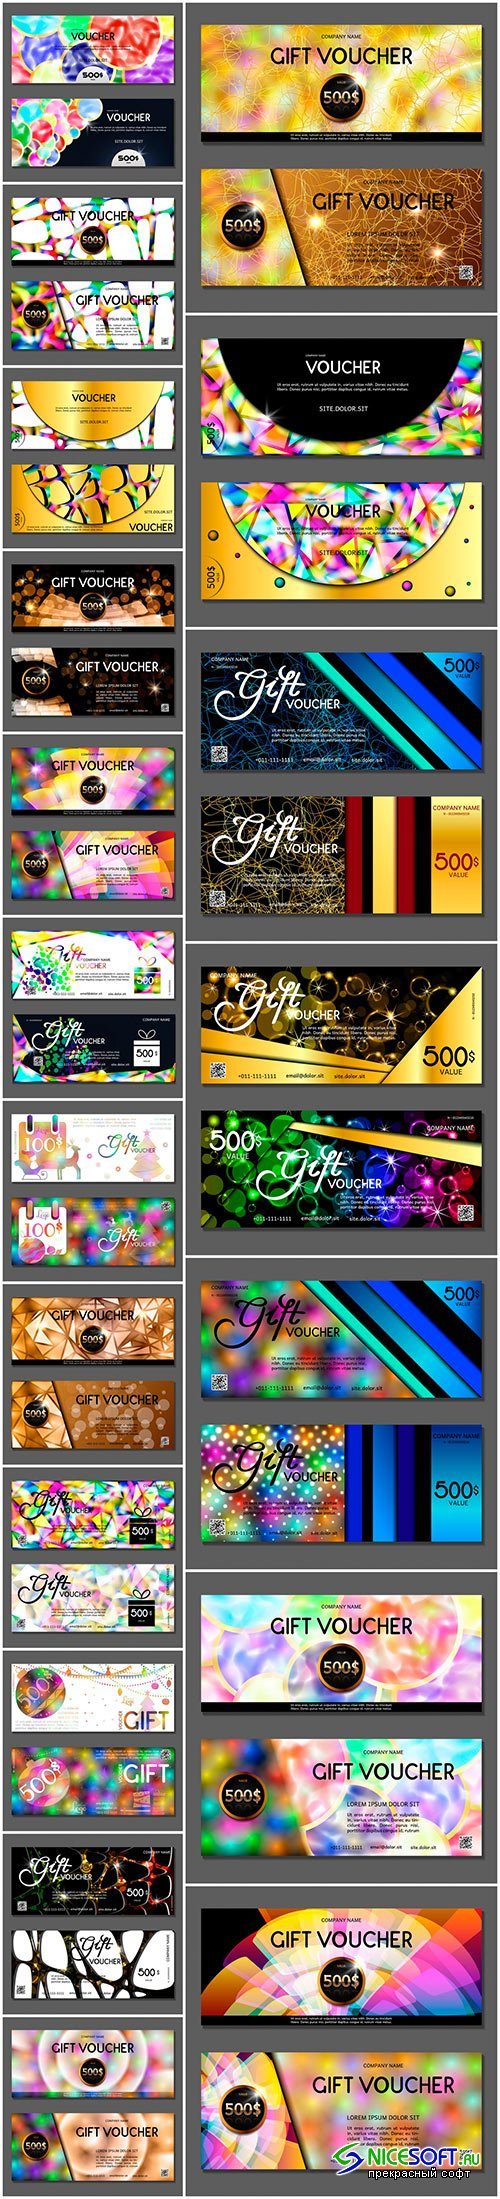 Gift voucher_set2 - 19EPS